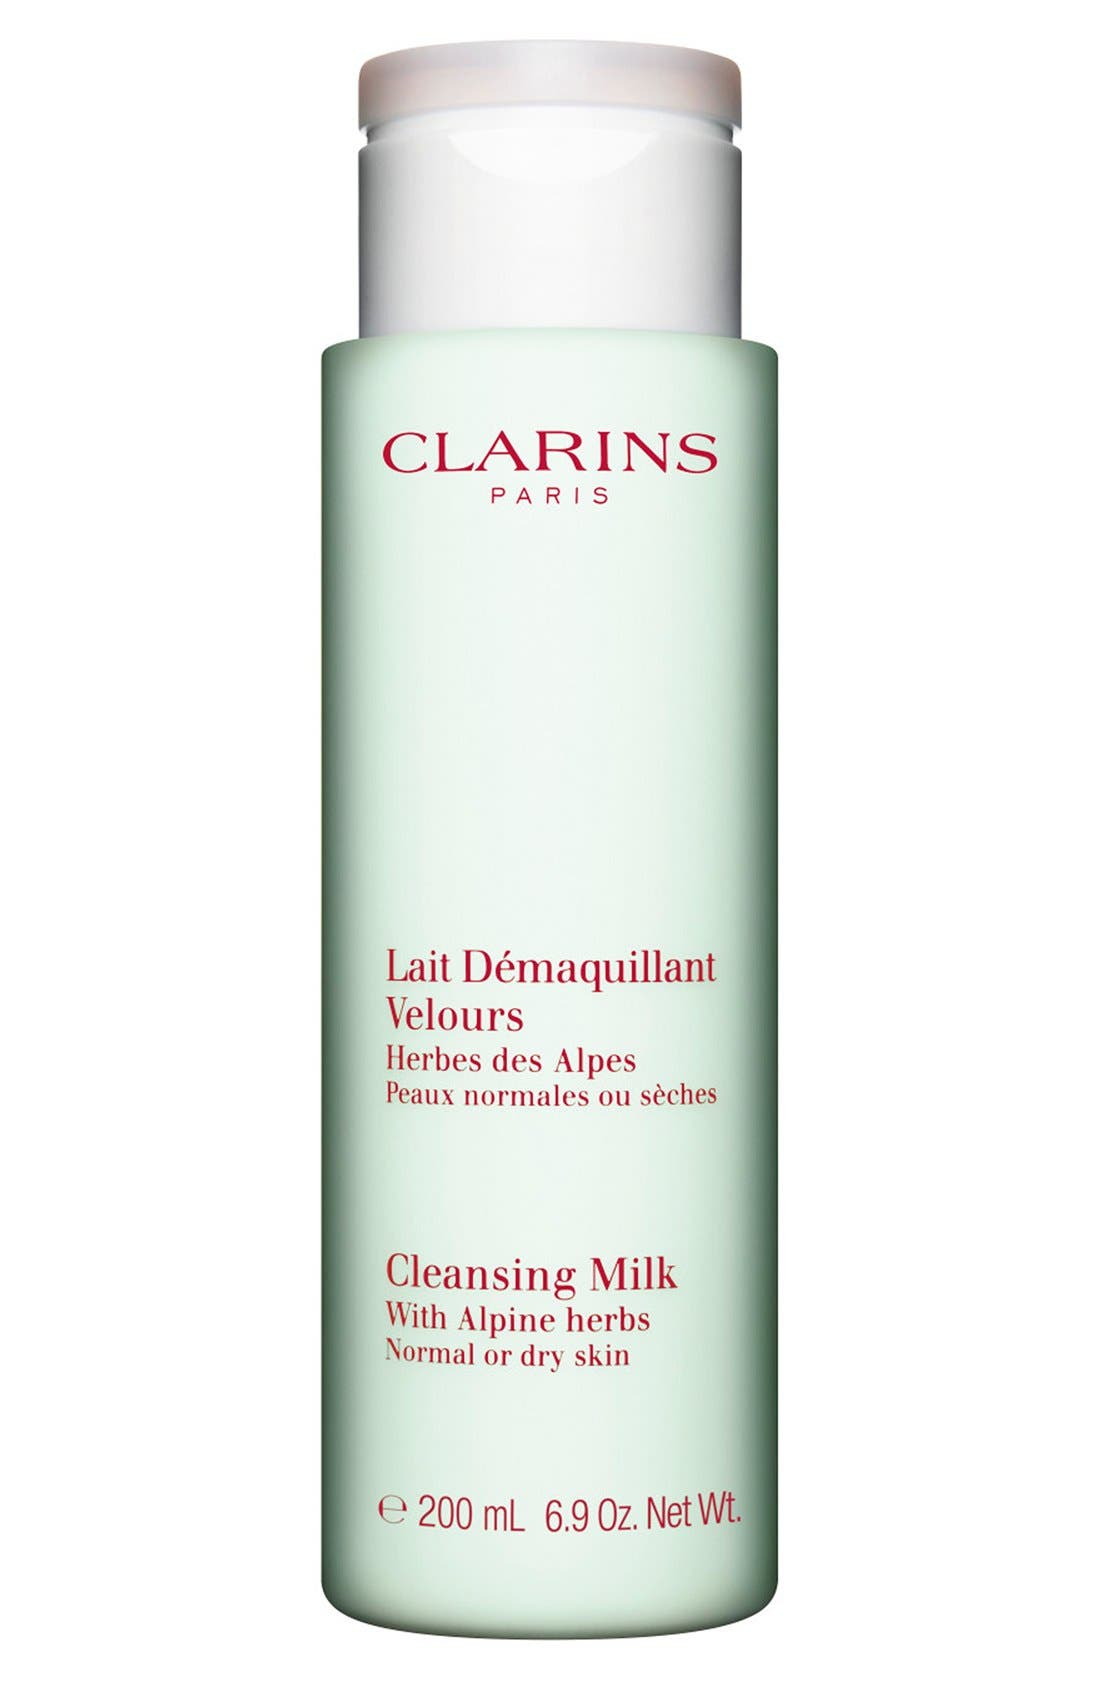 Clarins Cleansing Milk with Alpine Herbs for Normal/Dry Skin